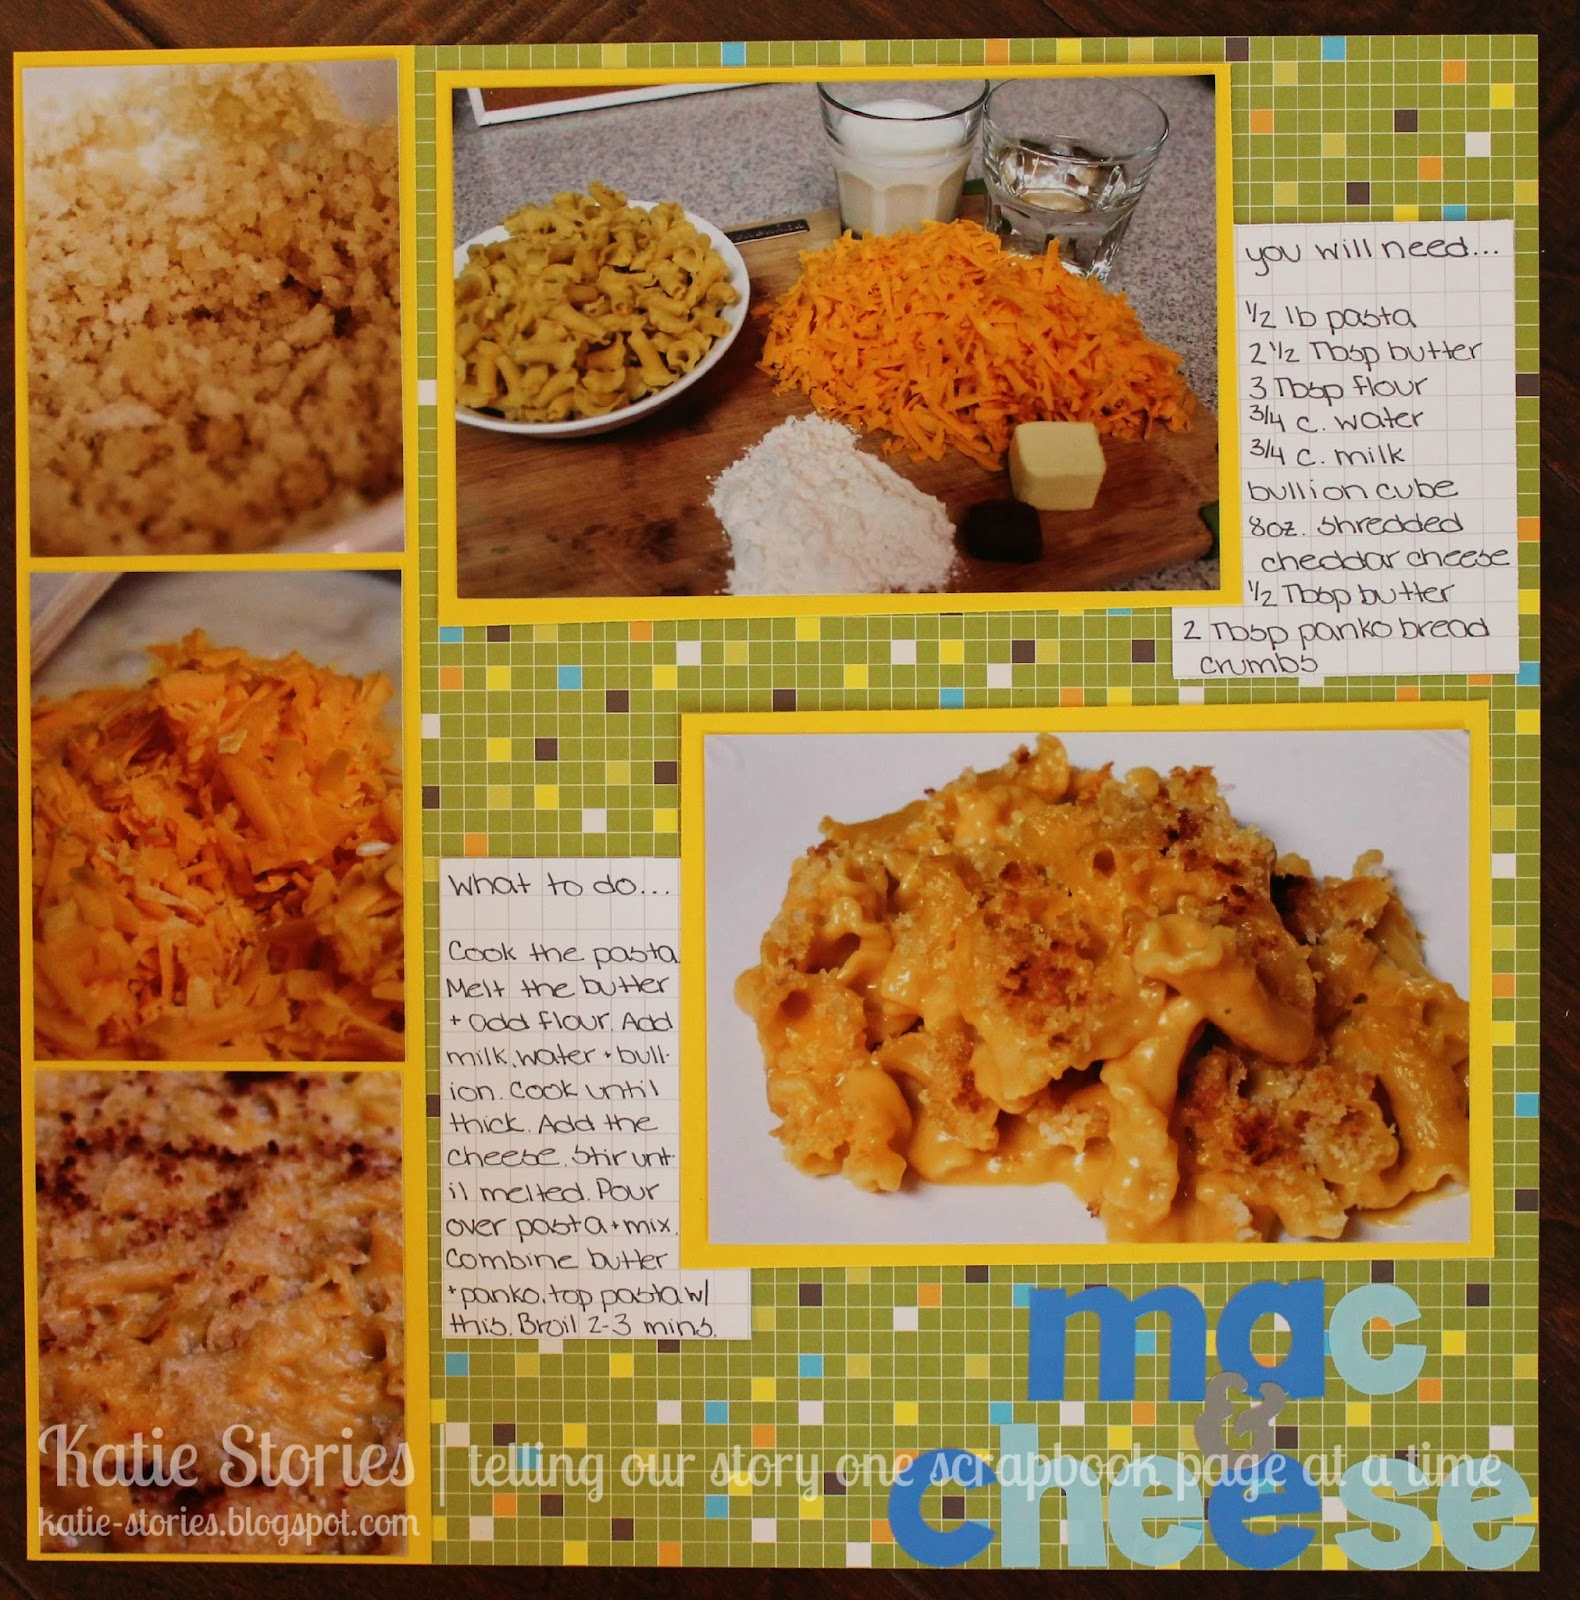 How to scrapbook on mac - But Not Just Any Recipe My All Time Favorite Comfort Food Mac And Cheese It Is Seriously The Easy Recipe Ever And It Was A Really Easy Layout Too